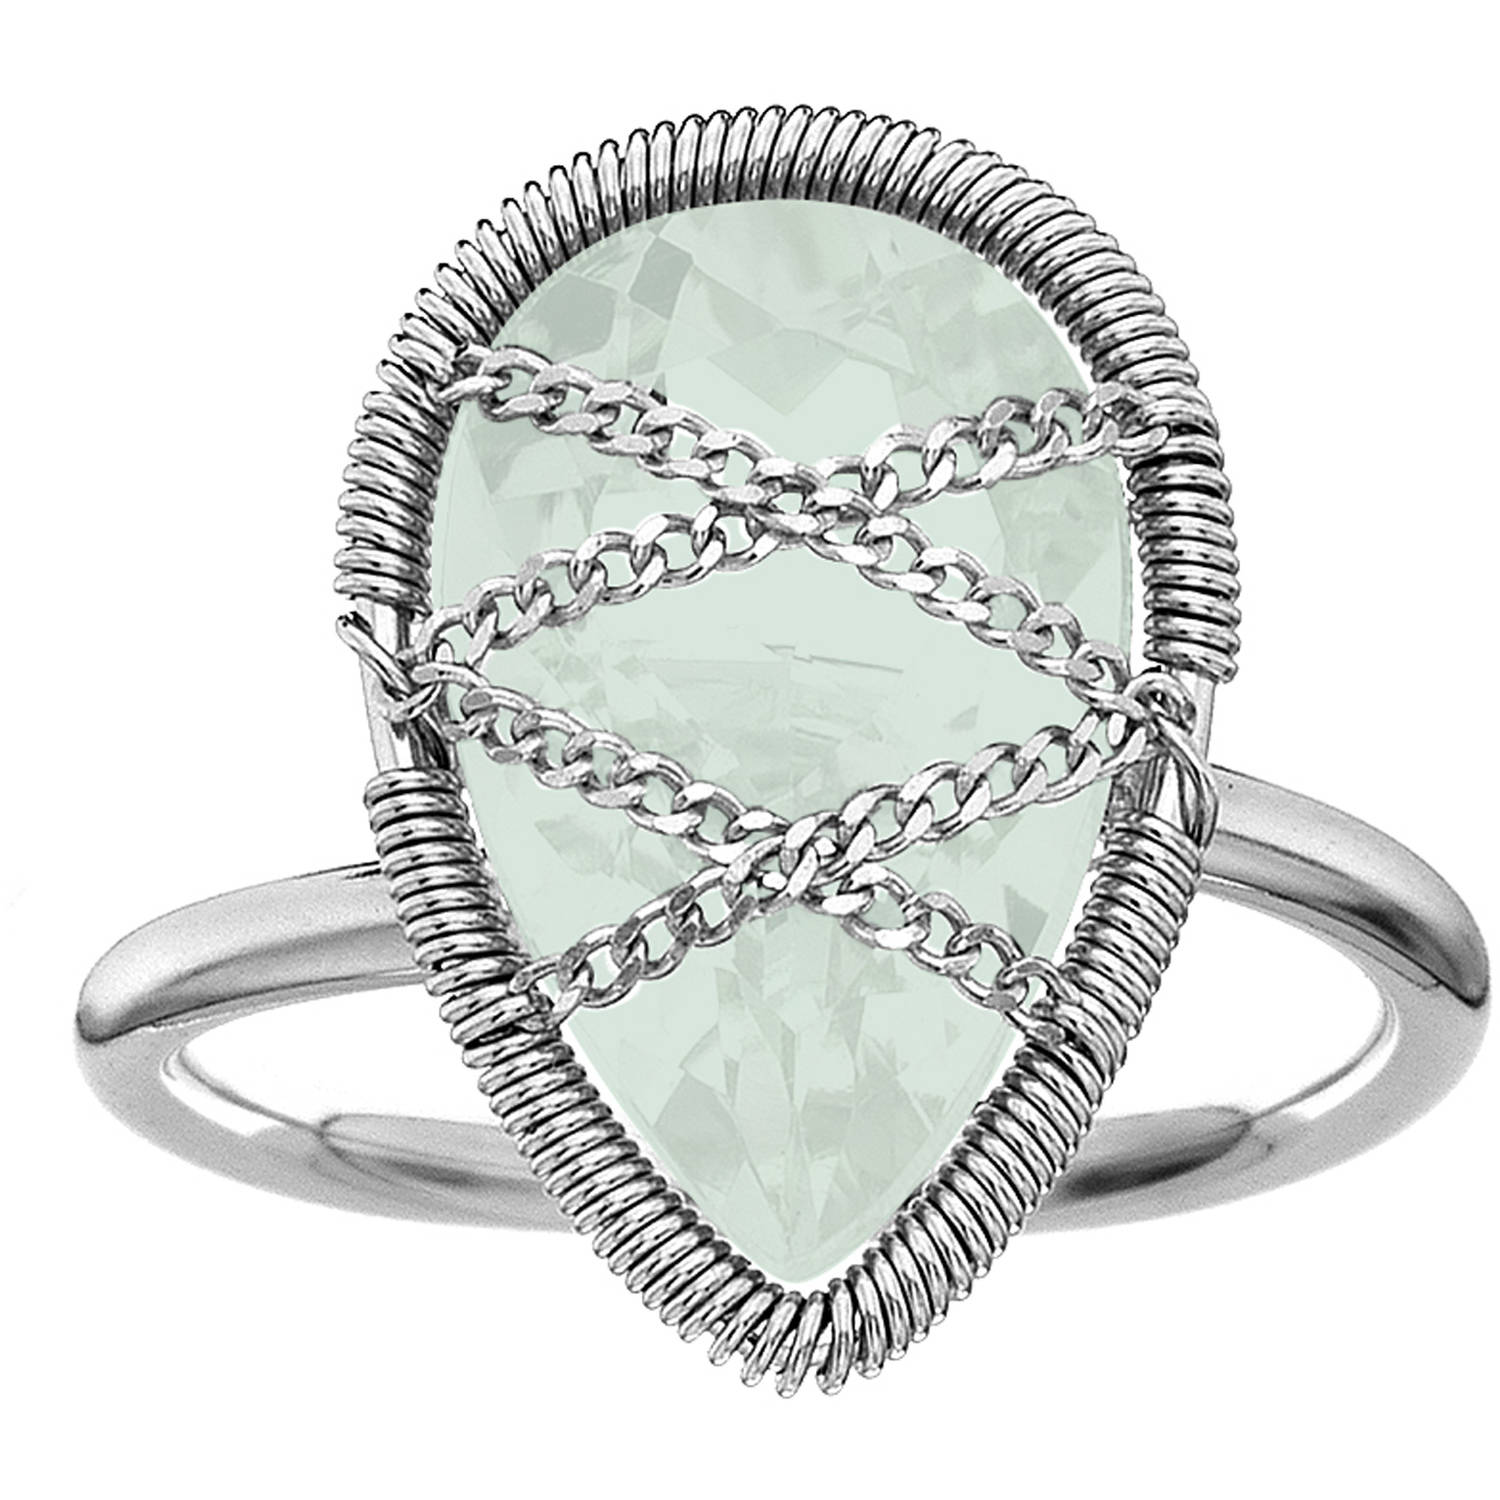 5th & Main Sterling Silver Hand-Wrapped Teardrop Chalcedony Stone Ring by Generic